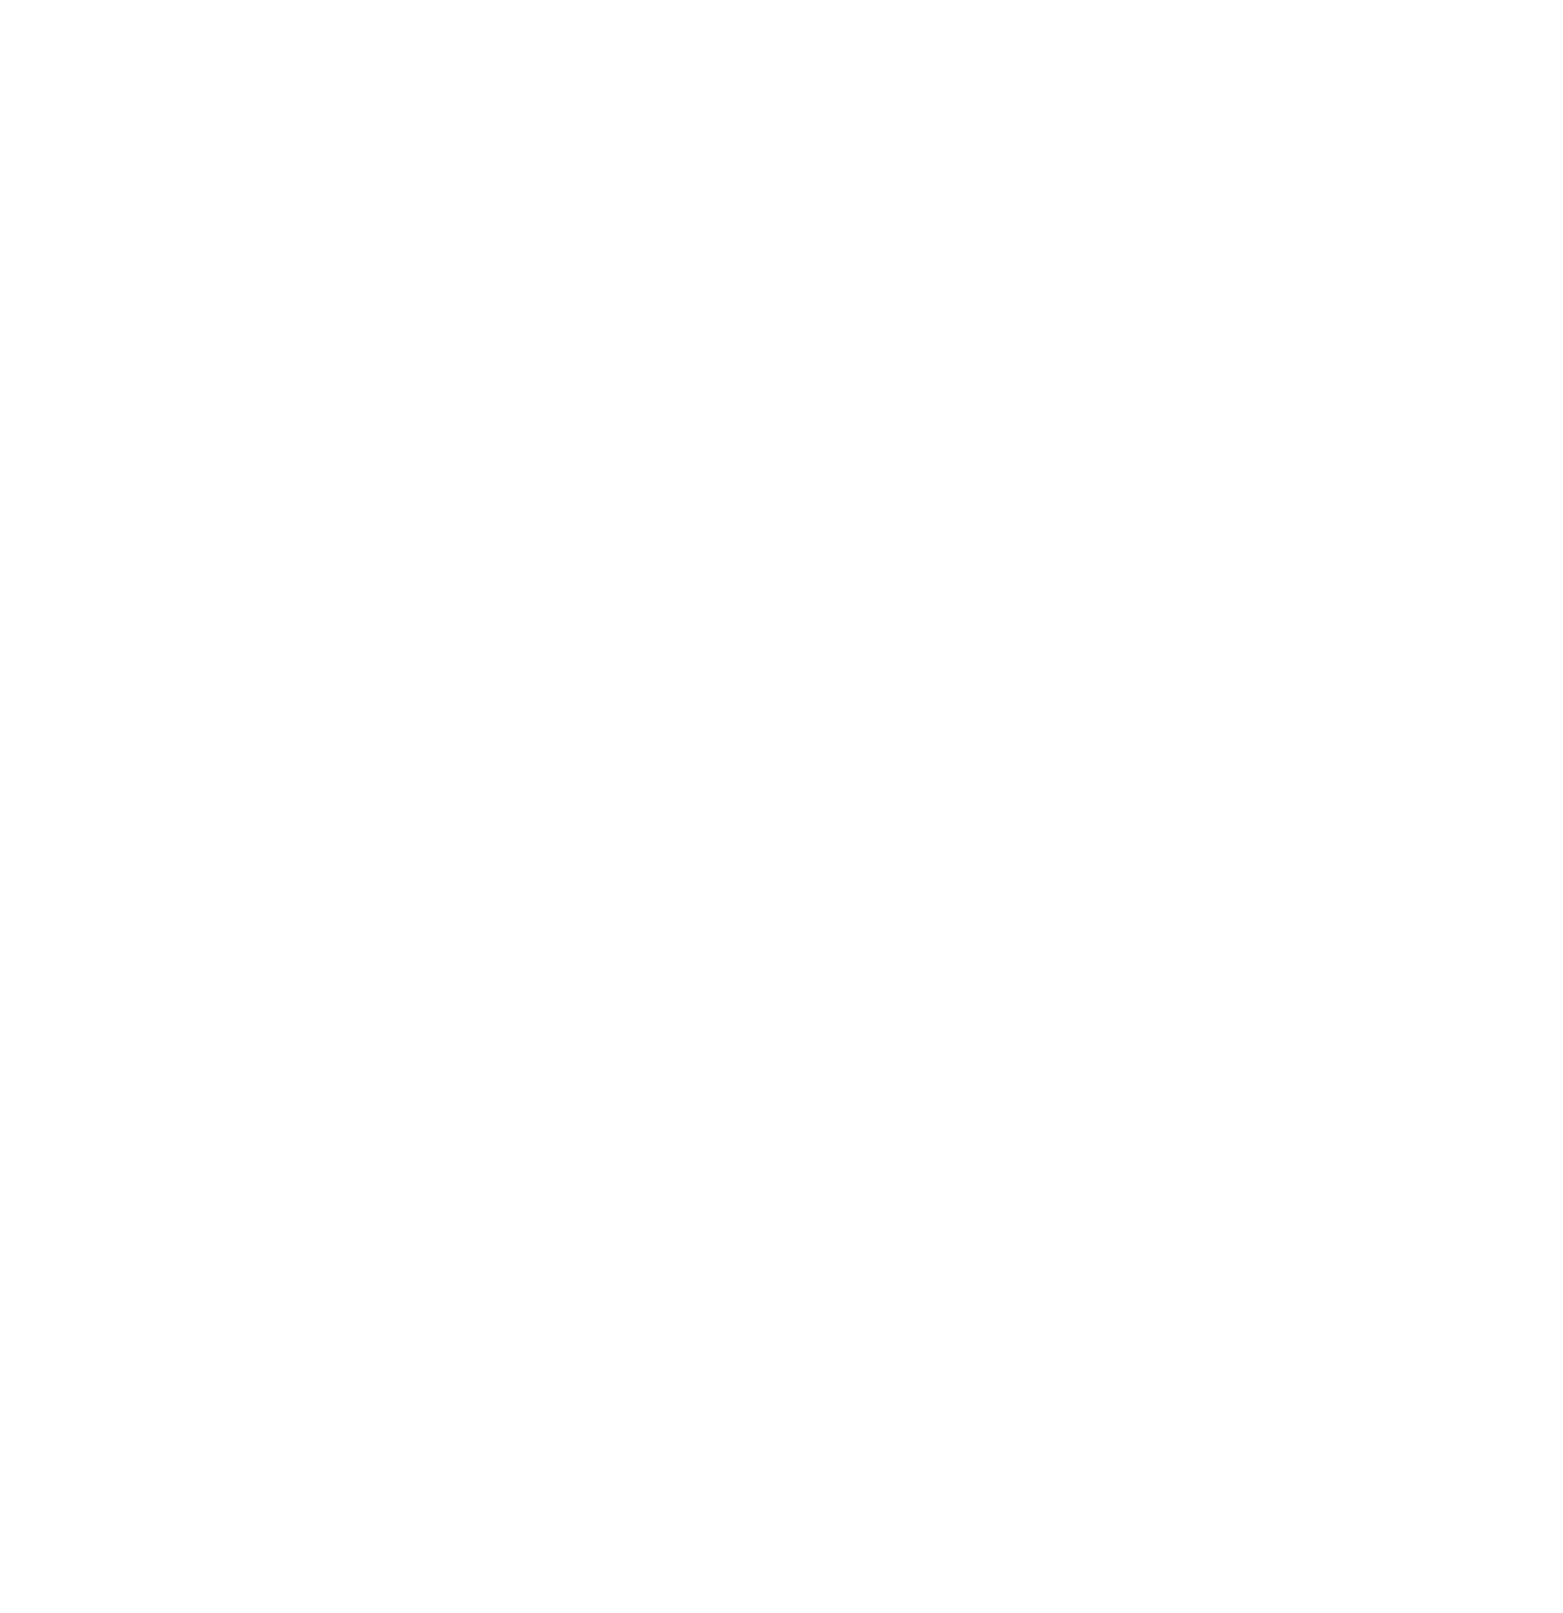 Rewards Card - You could earn an extra $200 and get a great rate with our Member Rewards Credit Card!* Offer ends 12/31